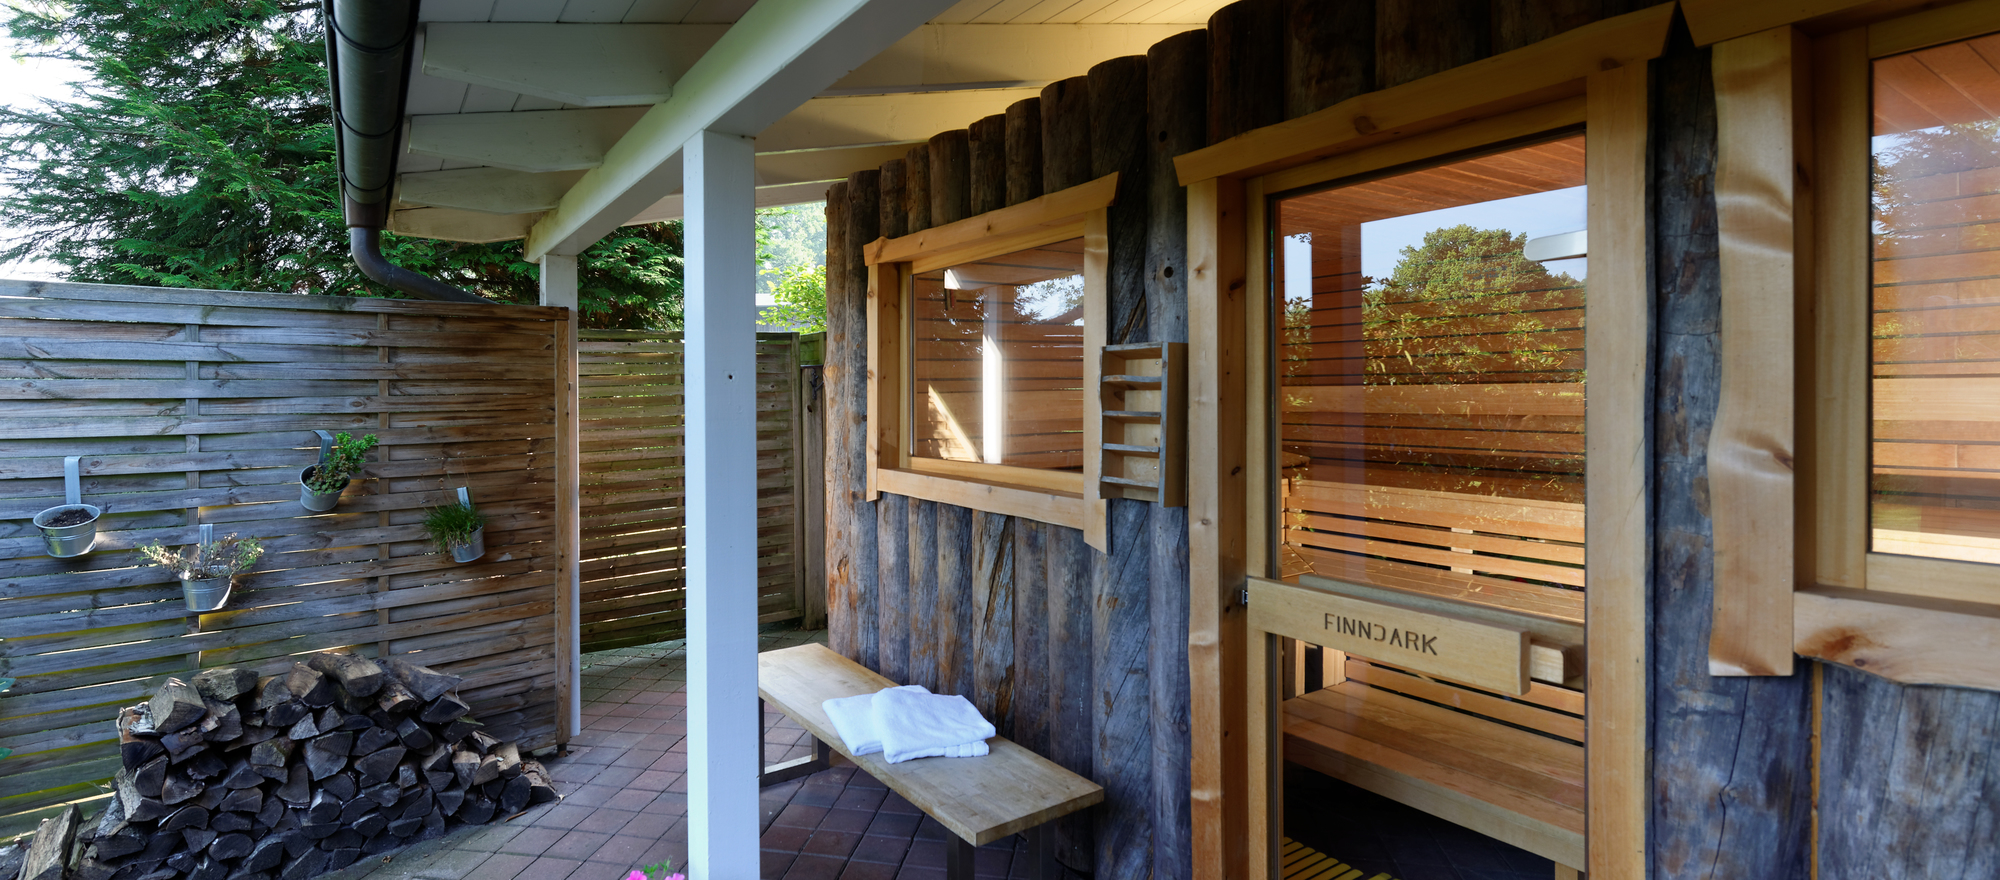 Finnish sauna in the Ringhotel Sellhorn in Hanstedt, 4-stars hotel in the Luneburg Heath region